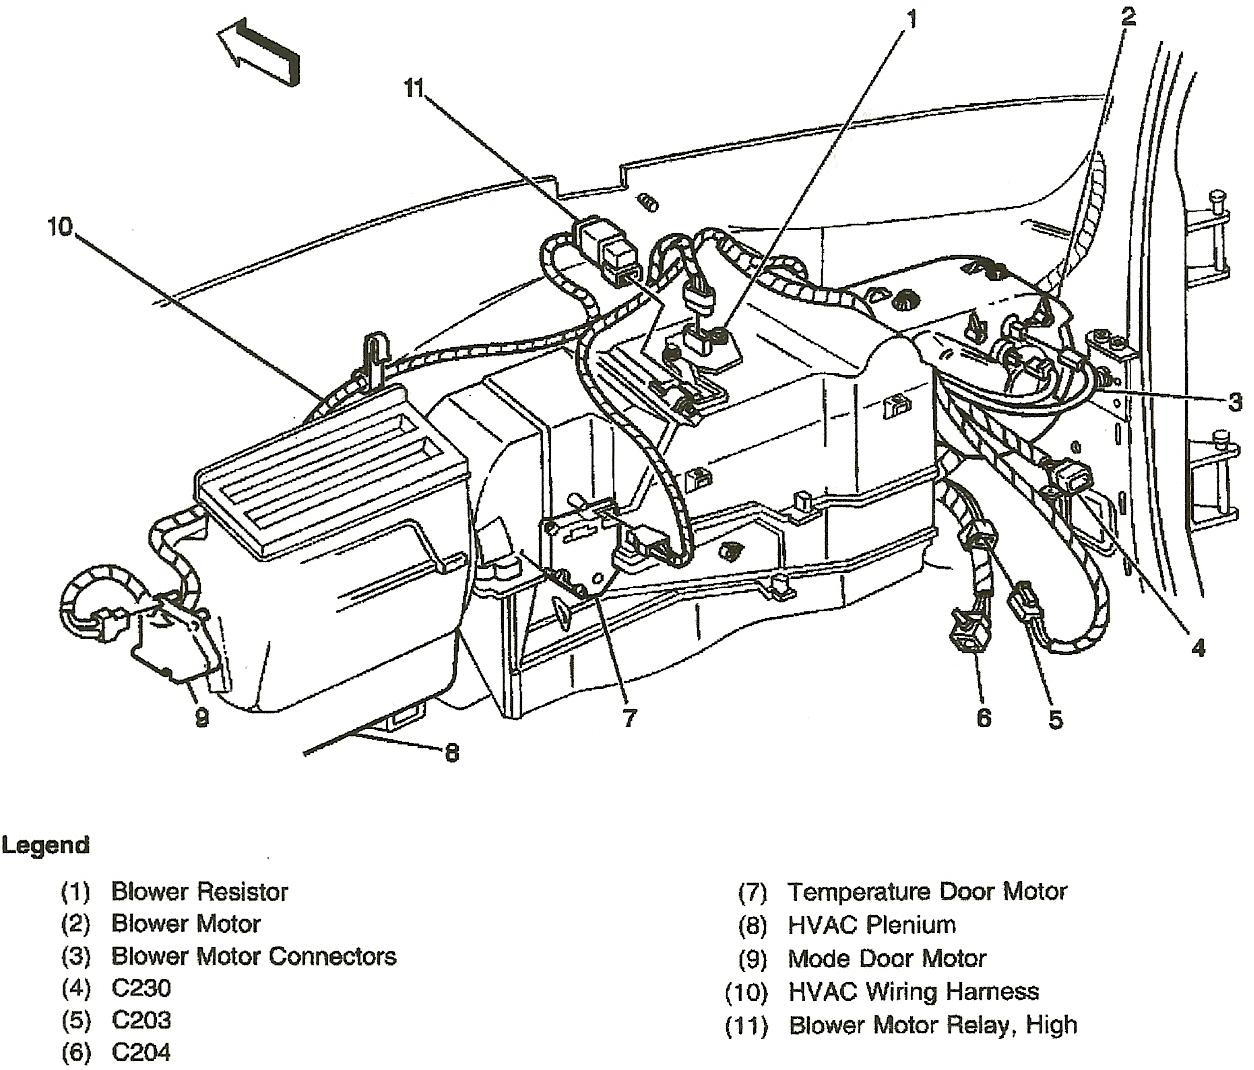 Gmc sierra air conditioning diagram auto electrical for 1994 chevy silverado blower motor resistor location